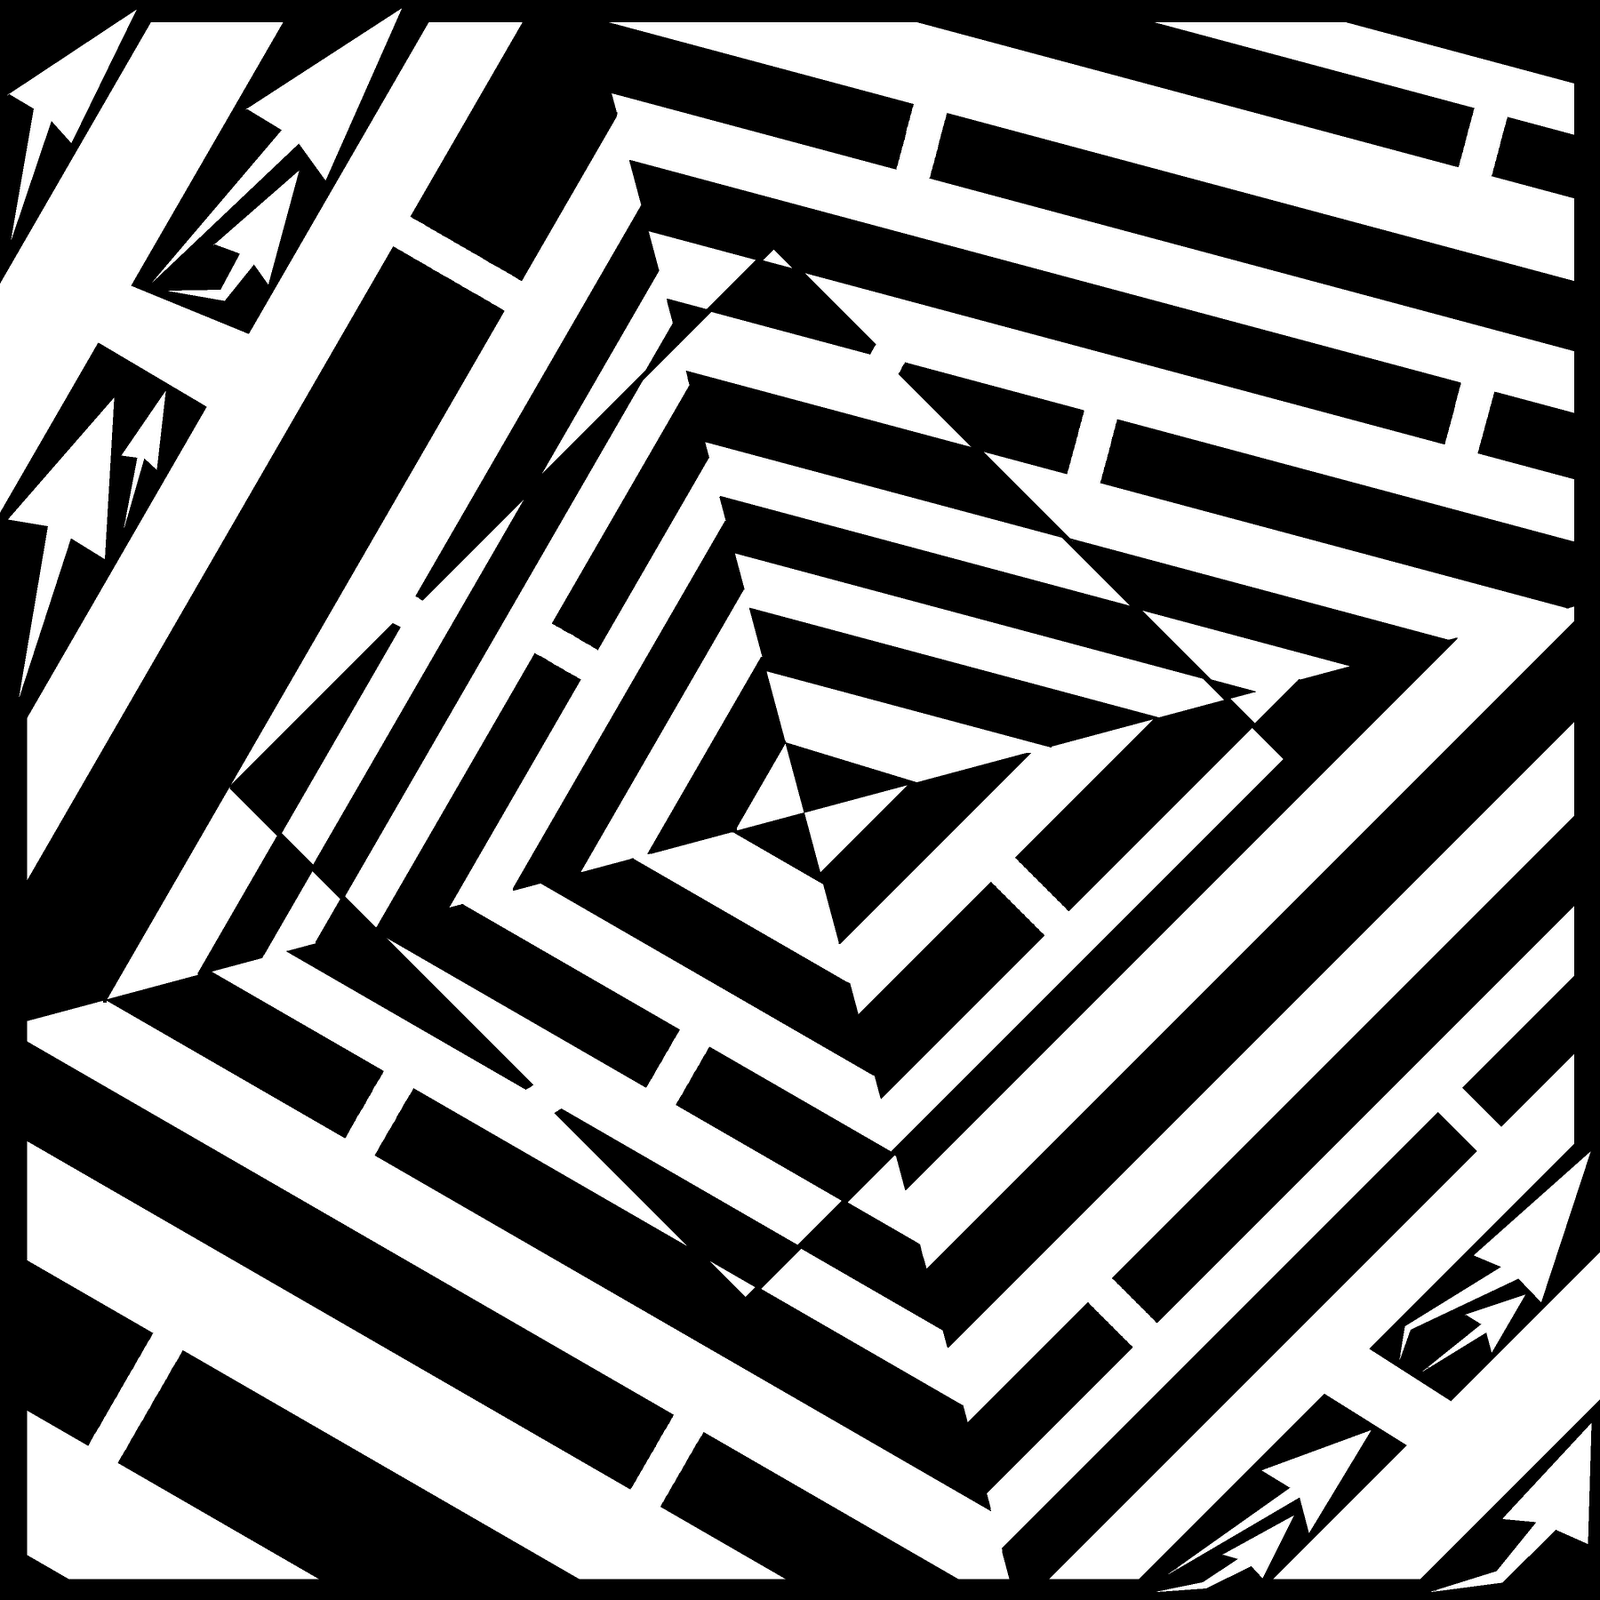 Maze A Delic Psychedelic Mazes of Optical Illusions